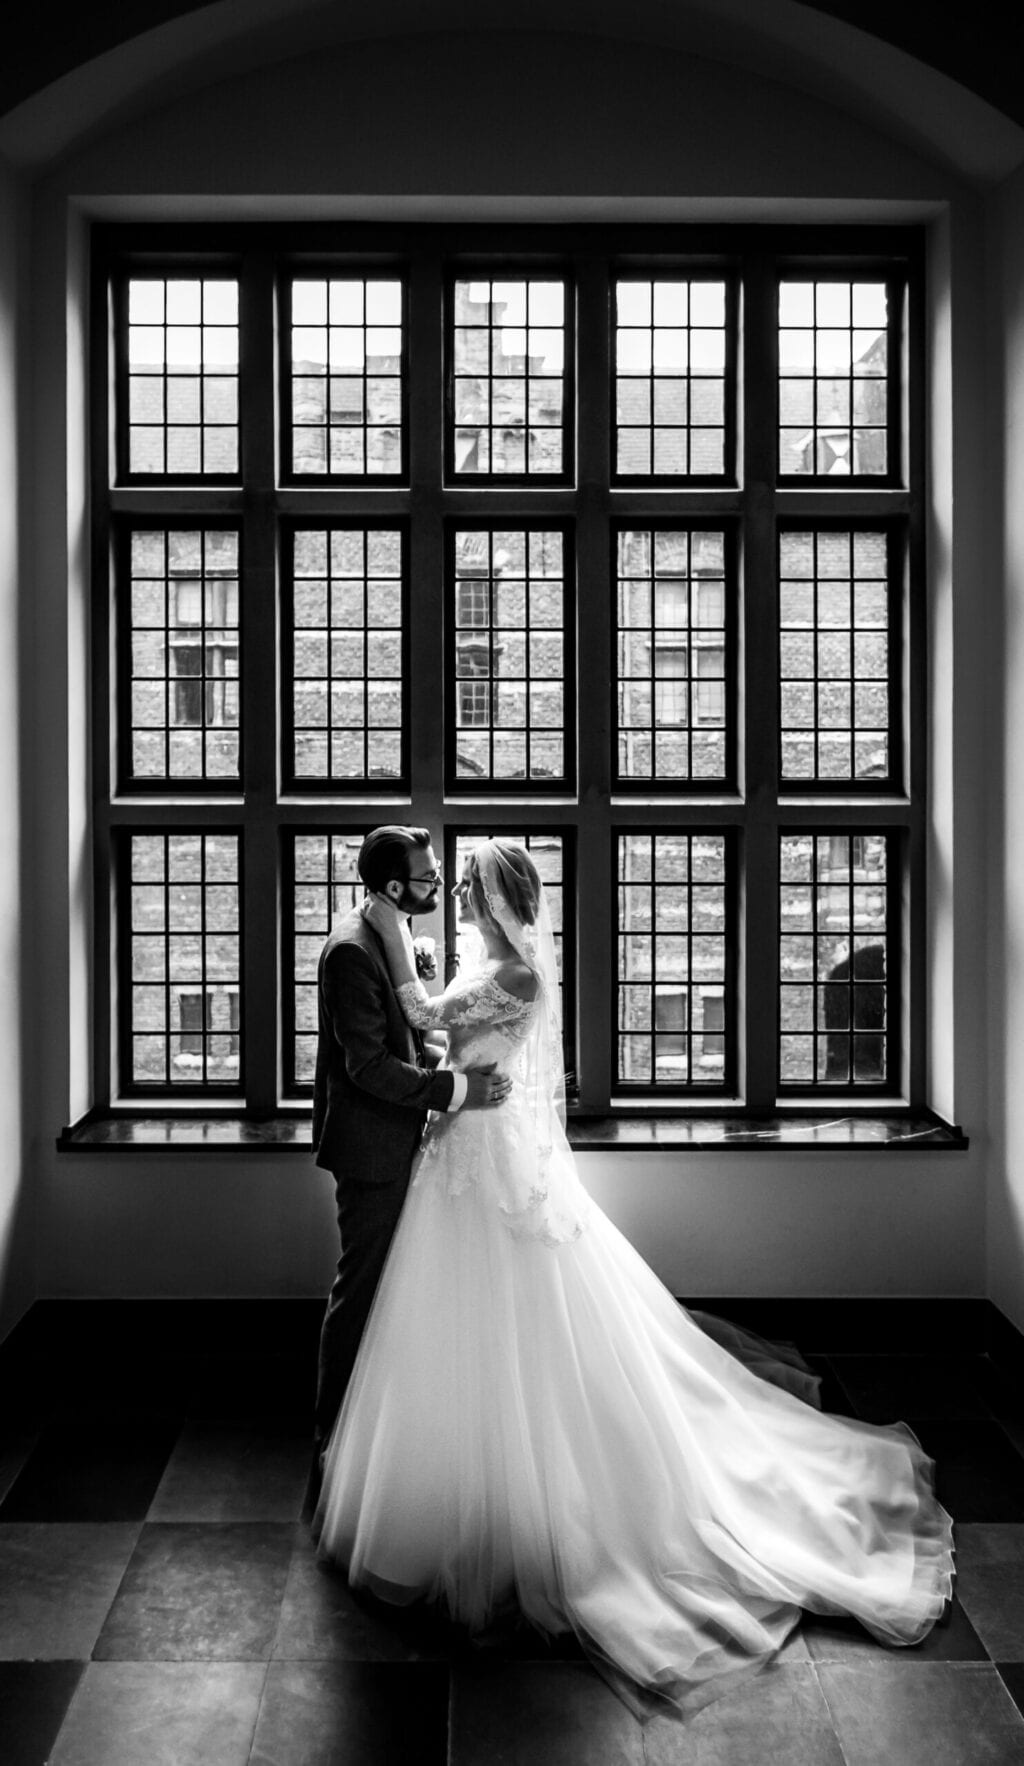 symbolic wedding ceremony planning couple posing in front of window